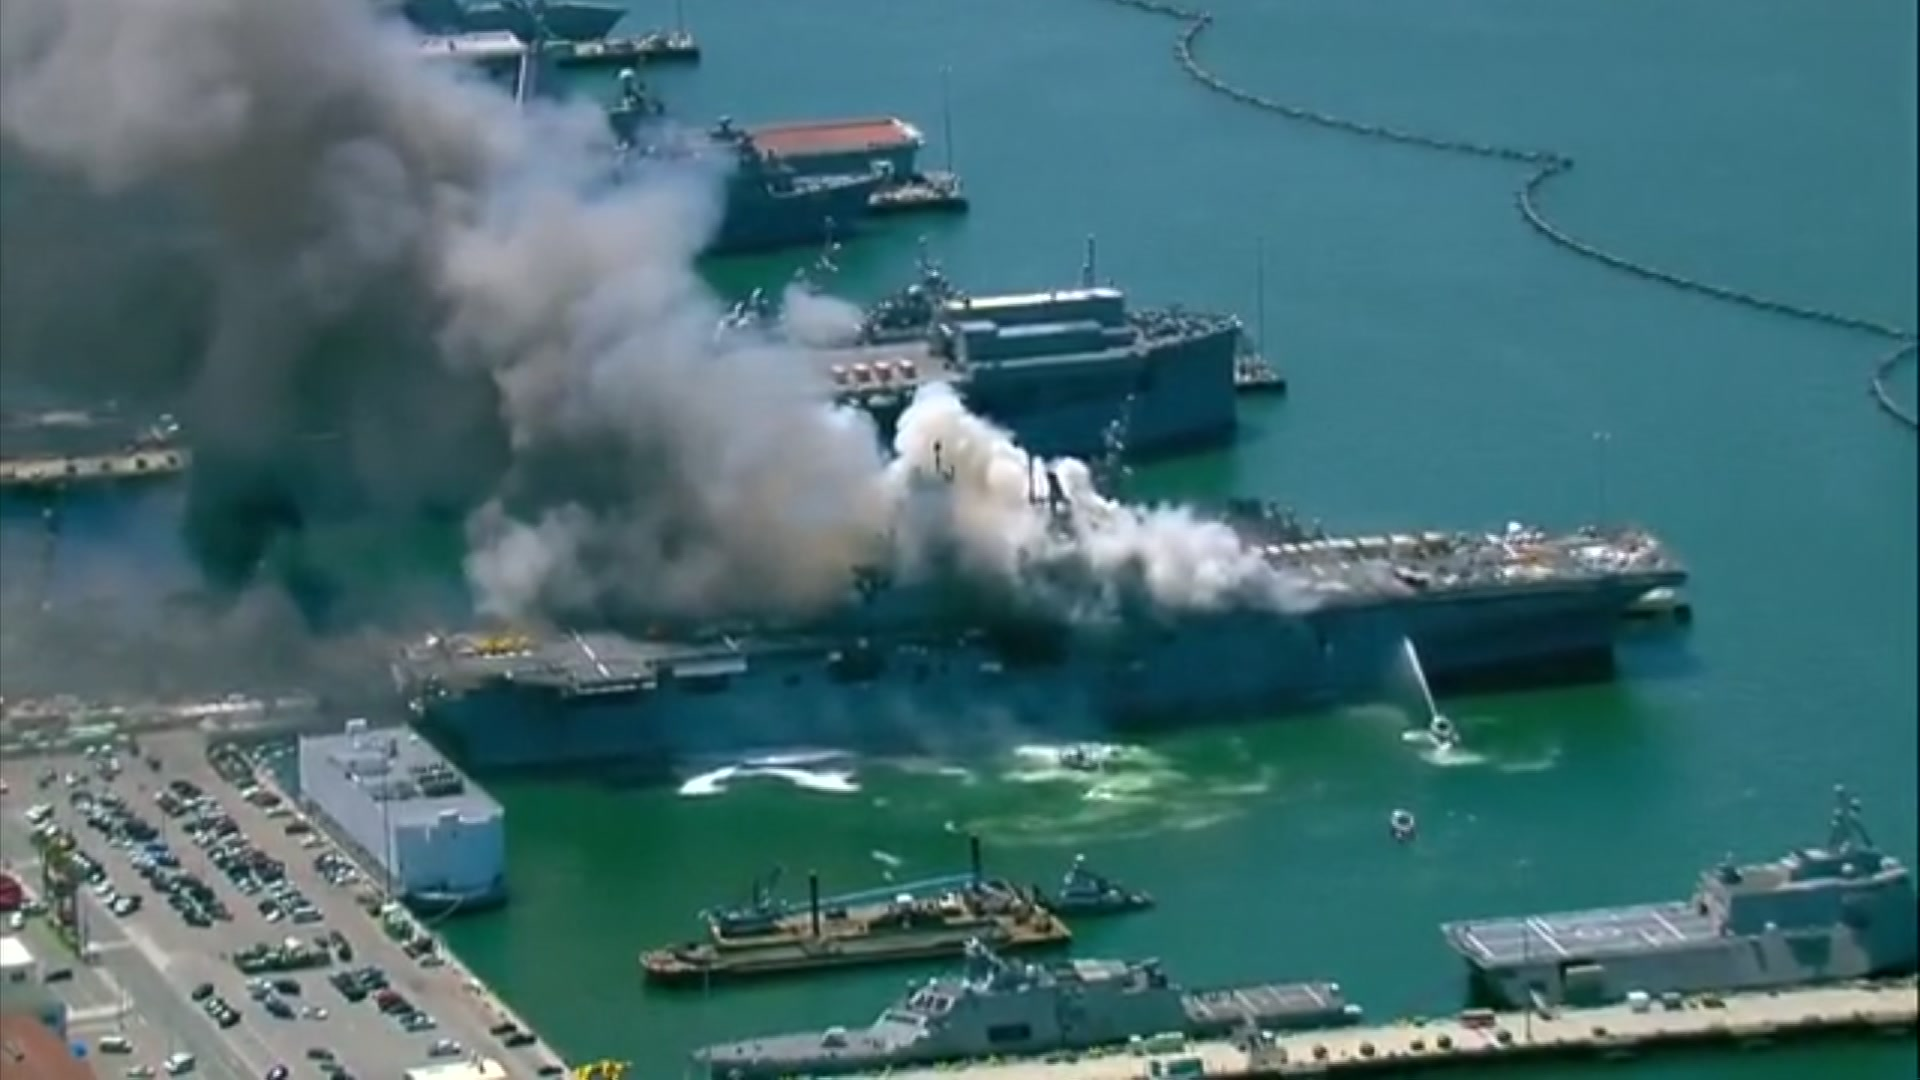 18 Sailors Injured After Fire Erupts On Navy Ship In San